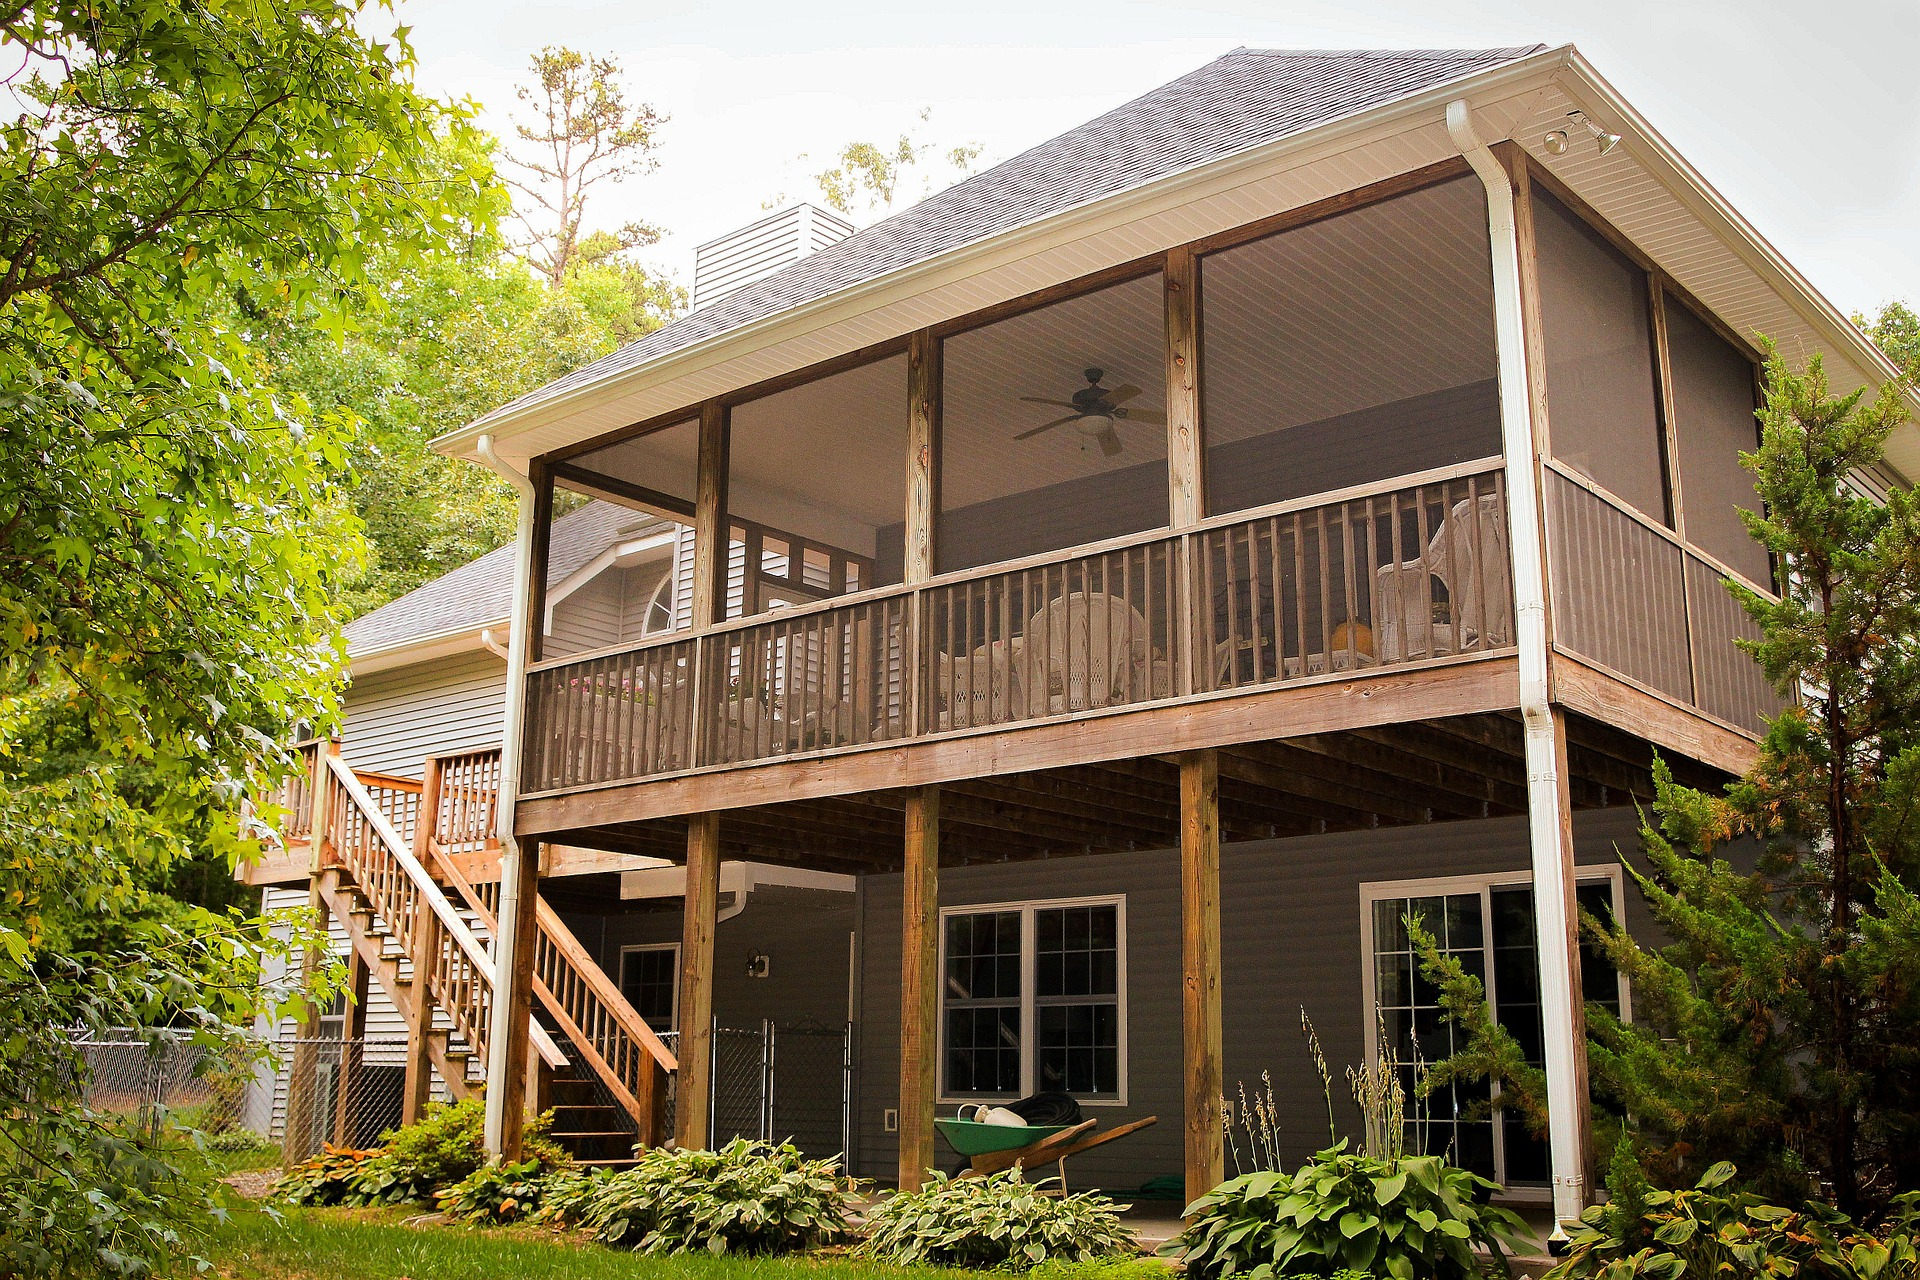 An outside deck with matching wood paneling for the floor and fencing; a patio set with a table and four chairs